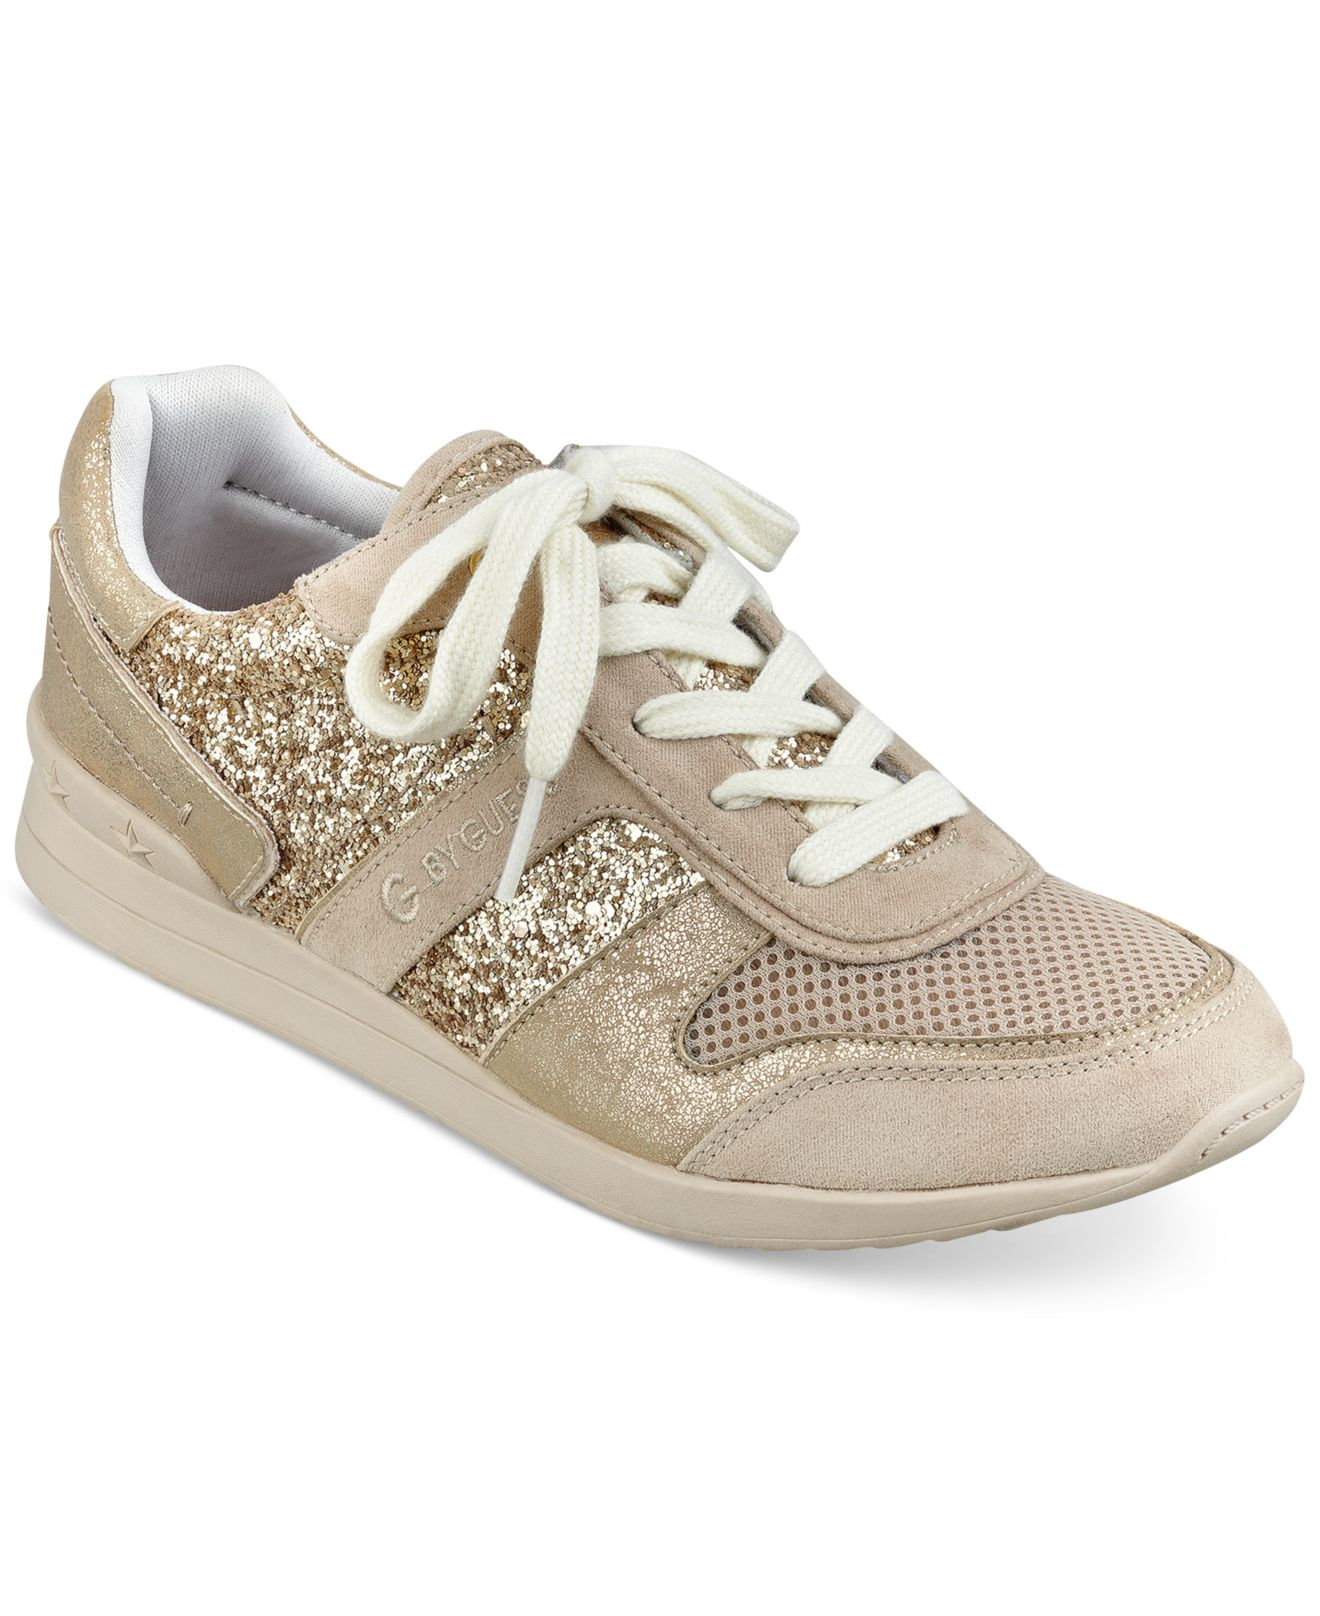 G by guess Fax Jogger Sneakers in Brown   Lyst